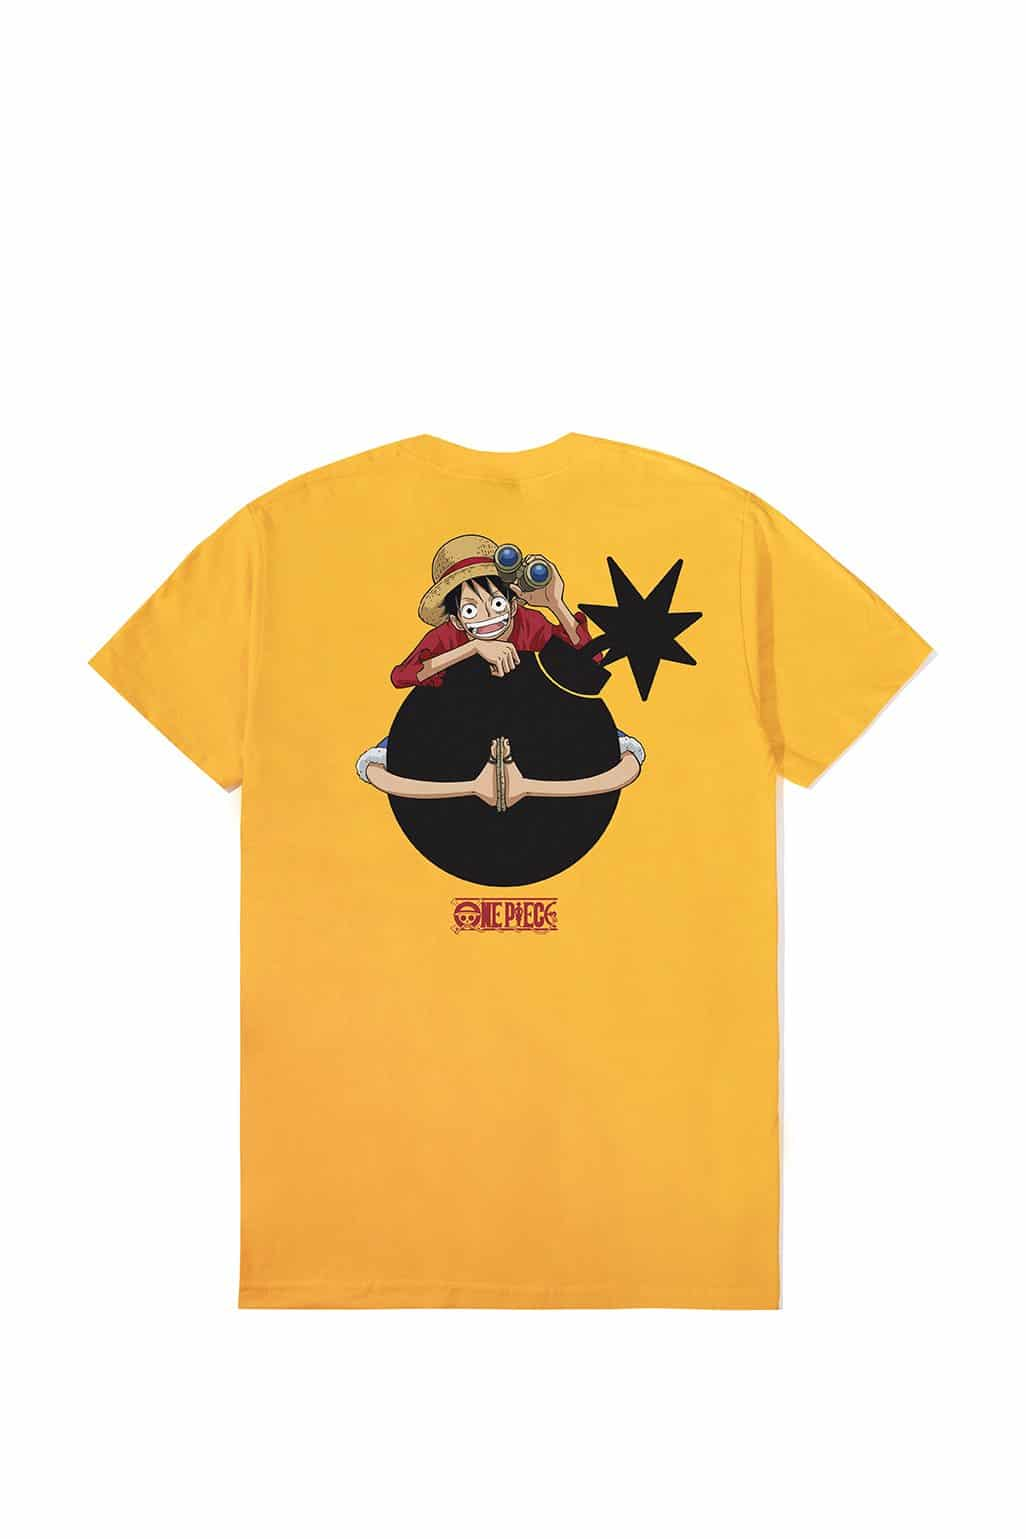 The Hundreds One Piece Luffy Tshirt